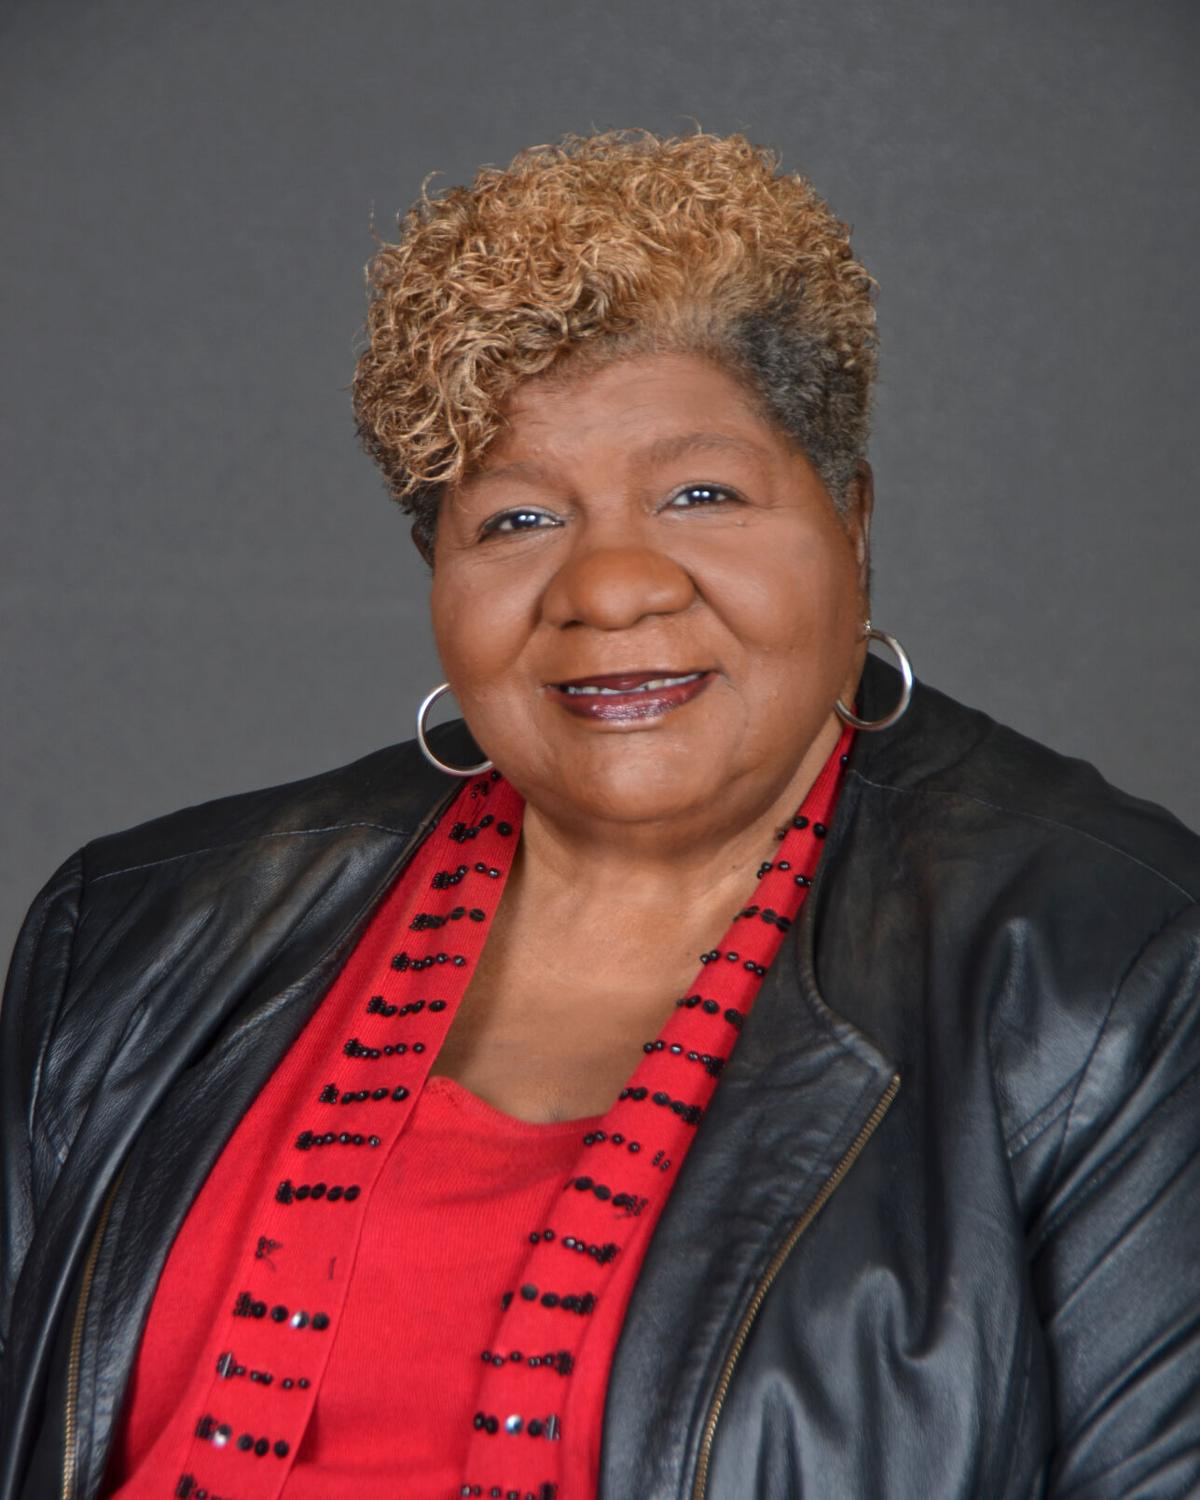 Gladys Shipman served as the first female president of the GSO NAACP